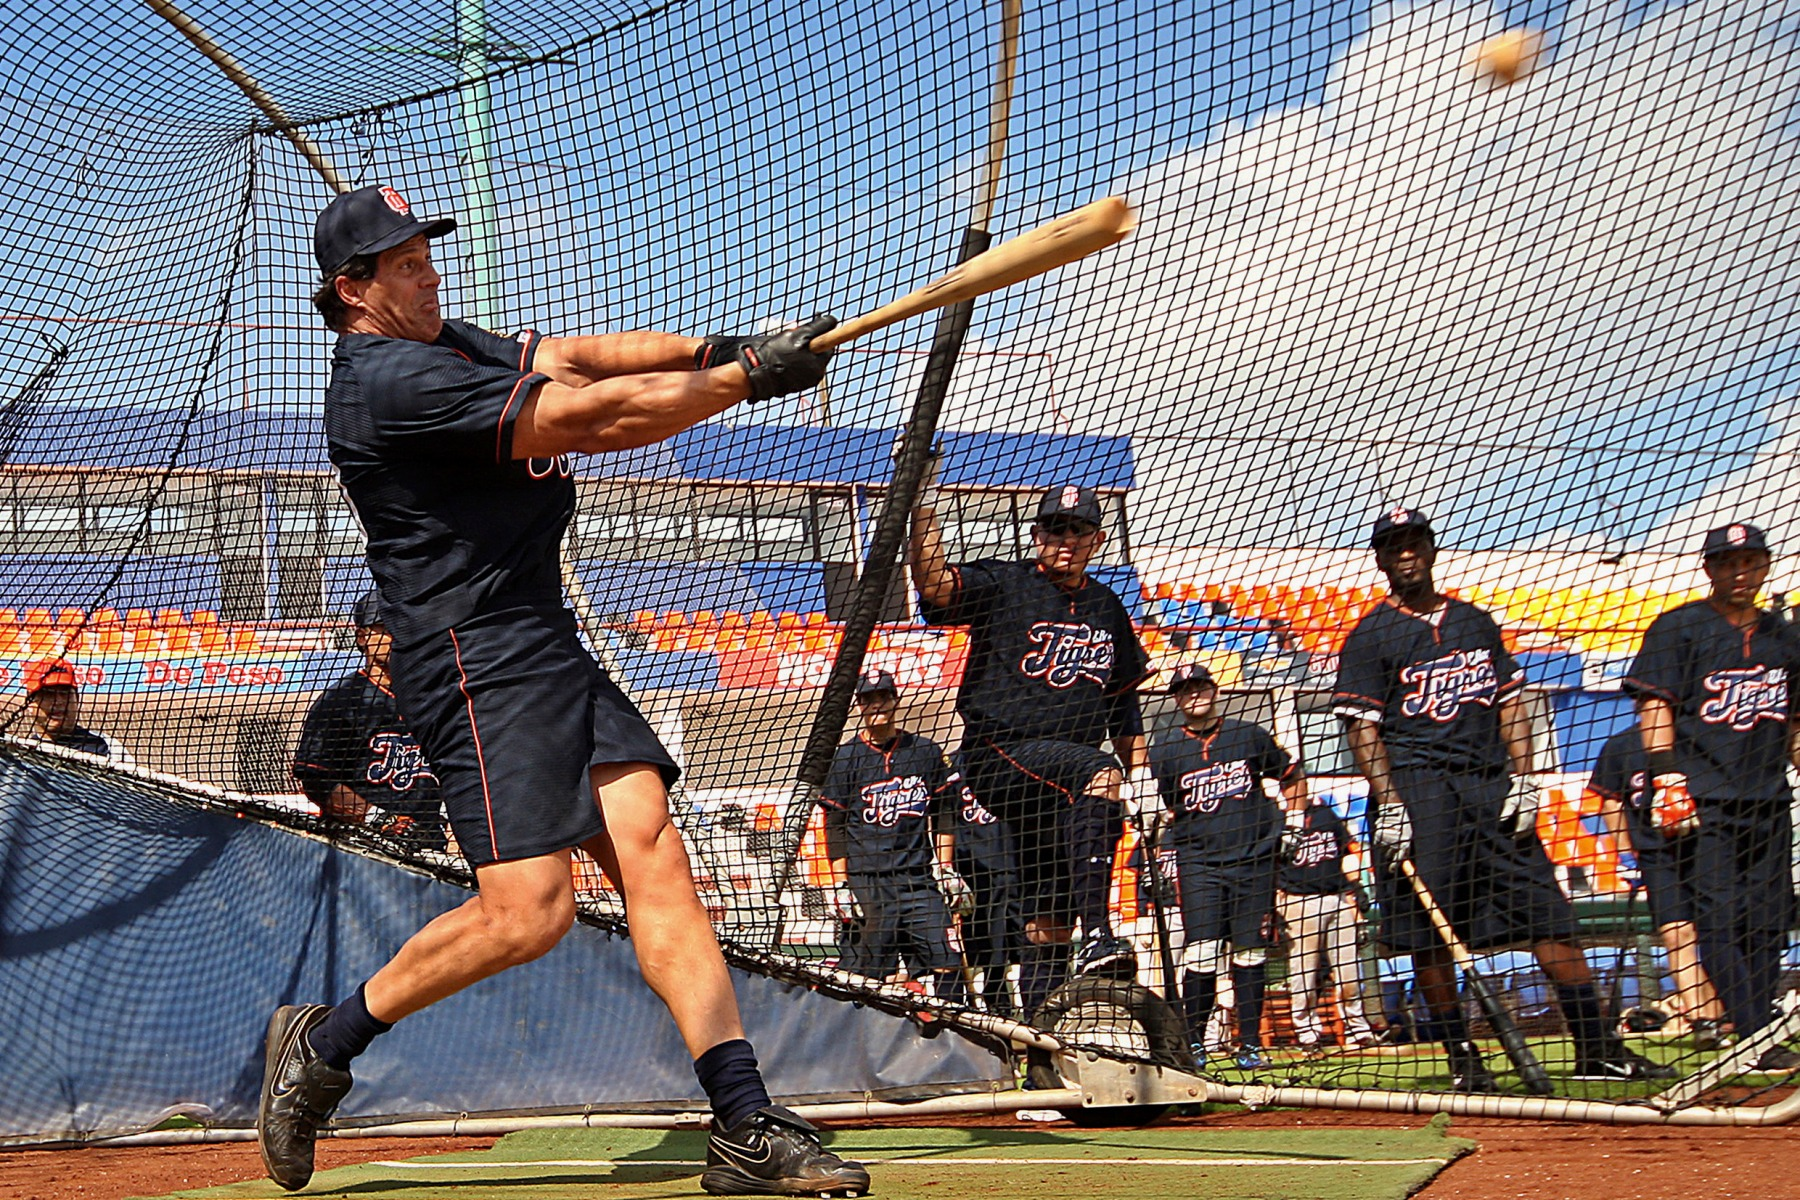 CANCUN, MEXICO , FEBRUARY 15: Jose Canseco of Tigres of Quintana Roo during a training session before the start of the 2012 season of the Mexican Baseball League at Beto Avila stadium, on February 14, 2012 in Cancun, Mexico. (Photo by: Fernando Nunez/Jam Media/LatinContent/Getty Images)